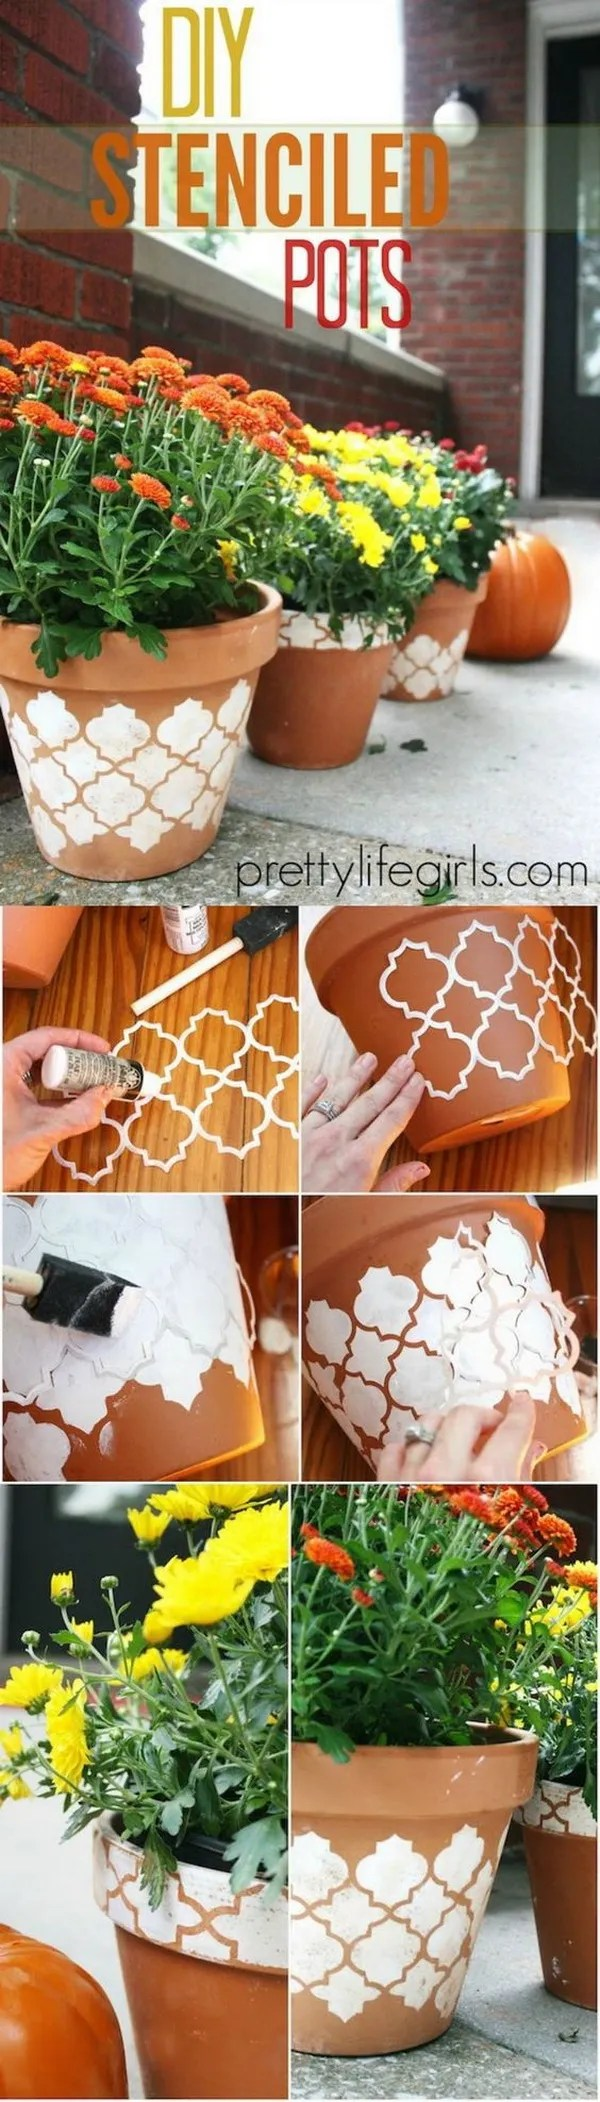 DIY Stenciled Clay Pots.